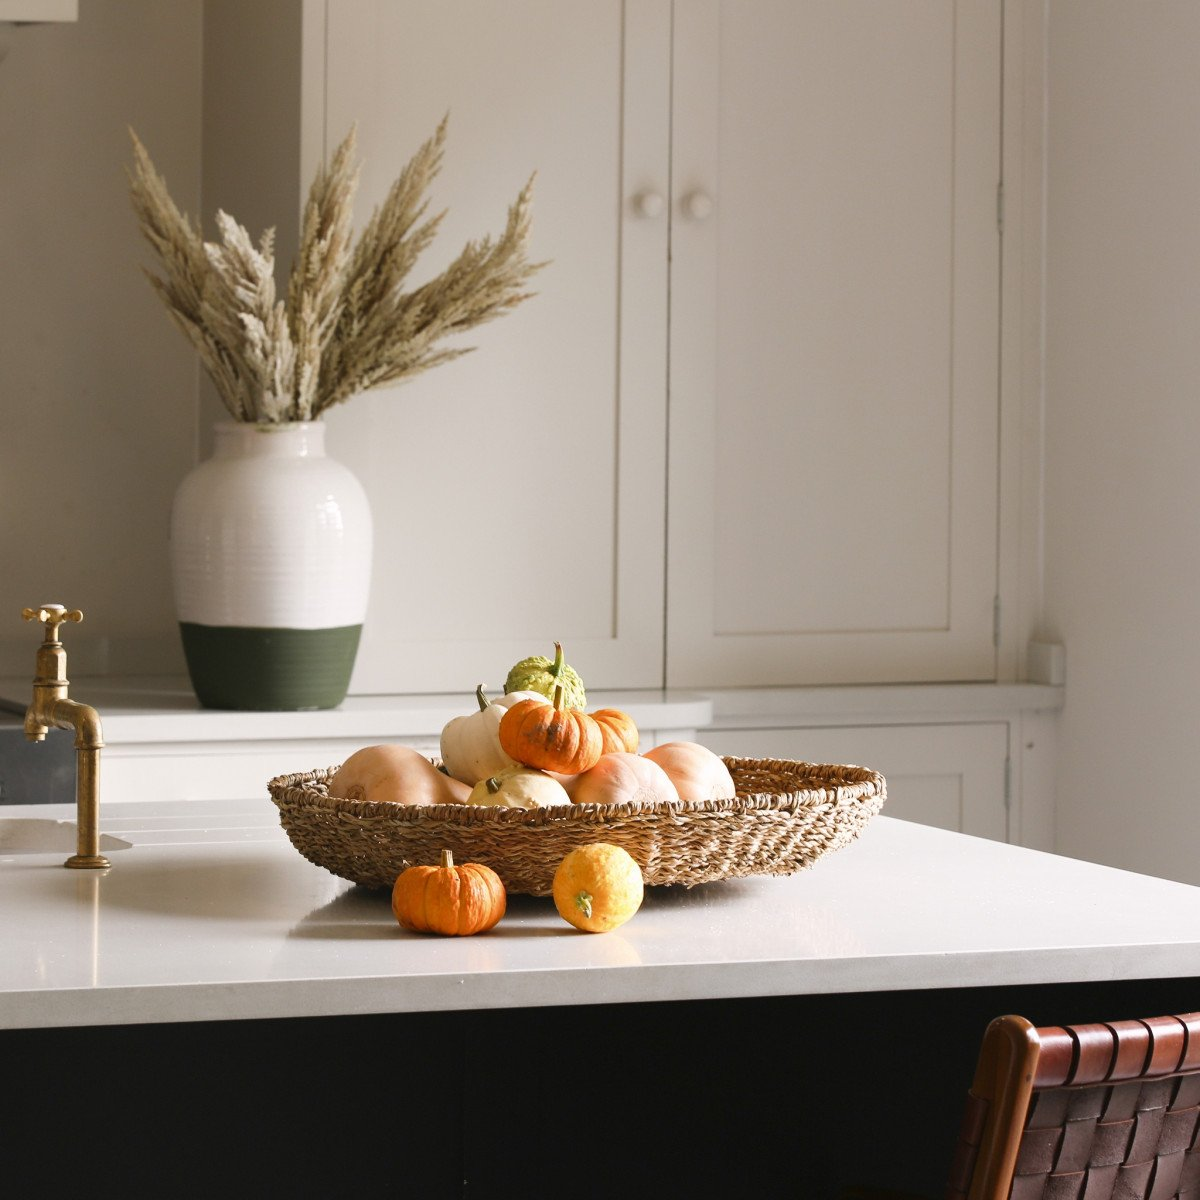 Introducing Autumn: Make Your Home Feel Like Fall